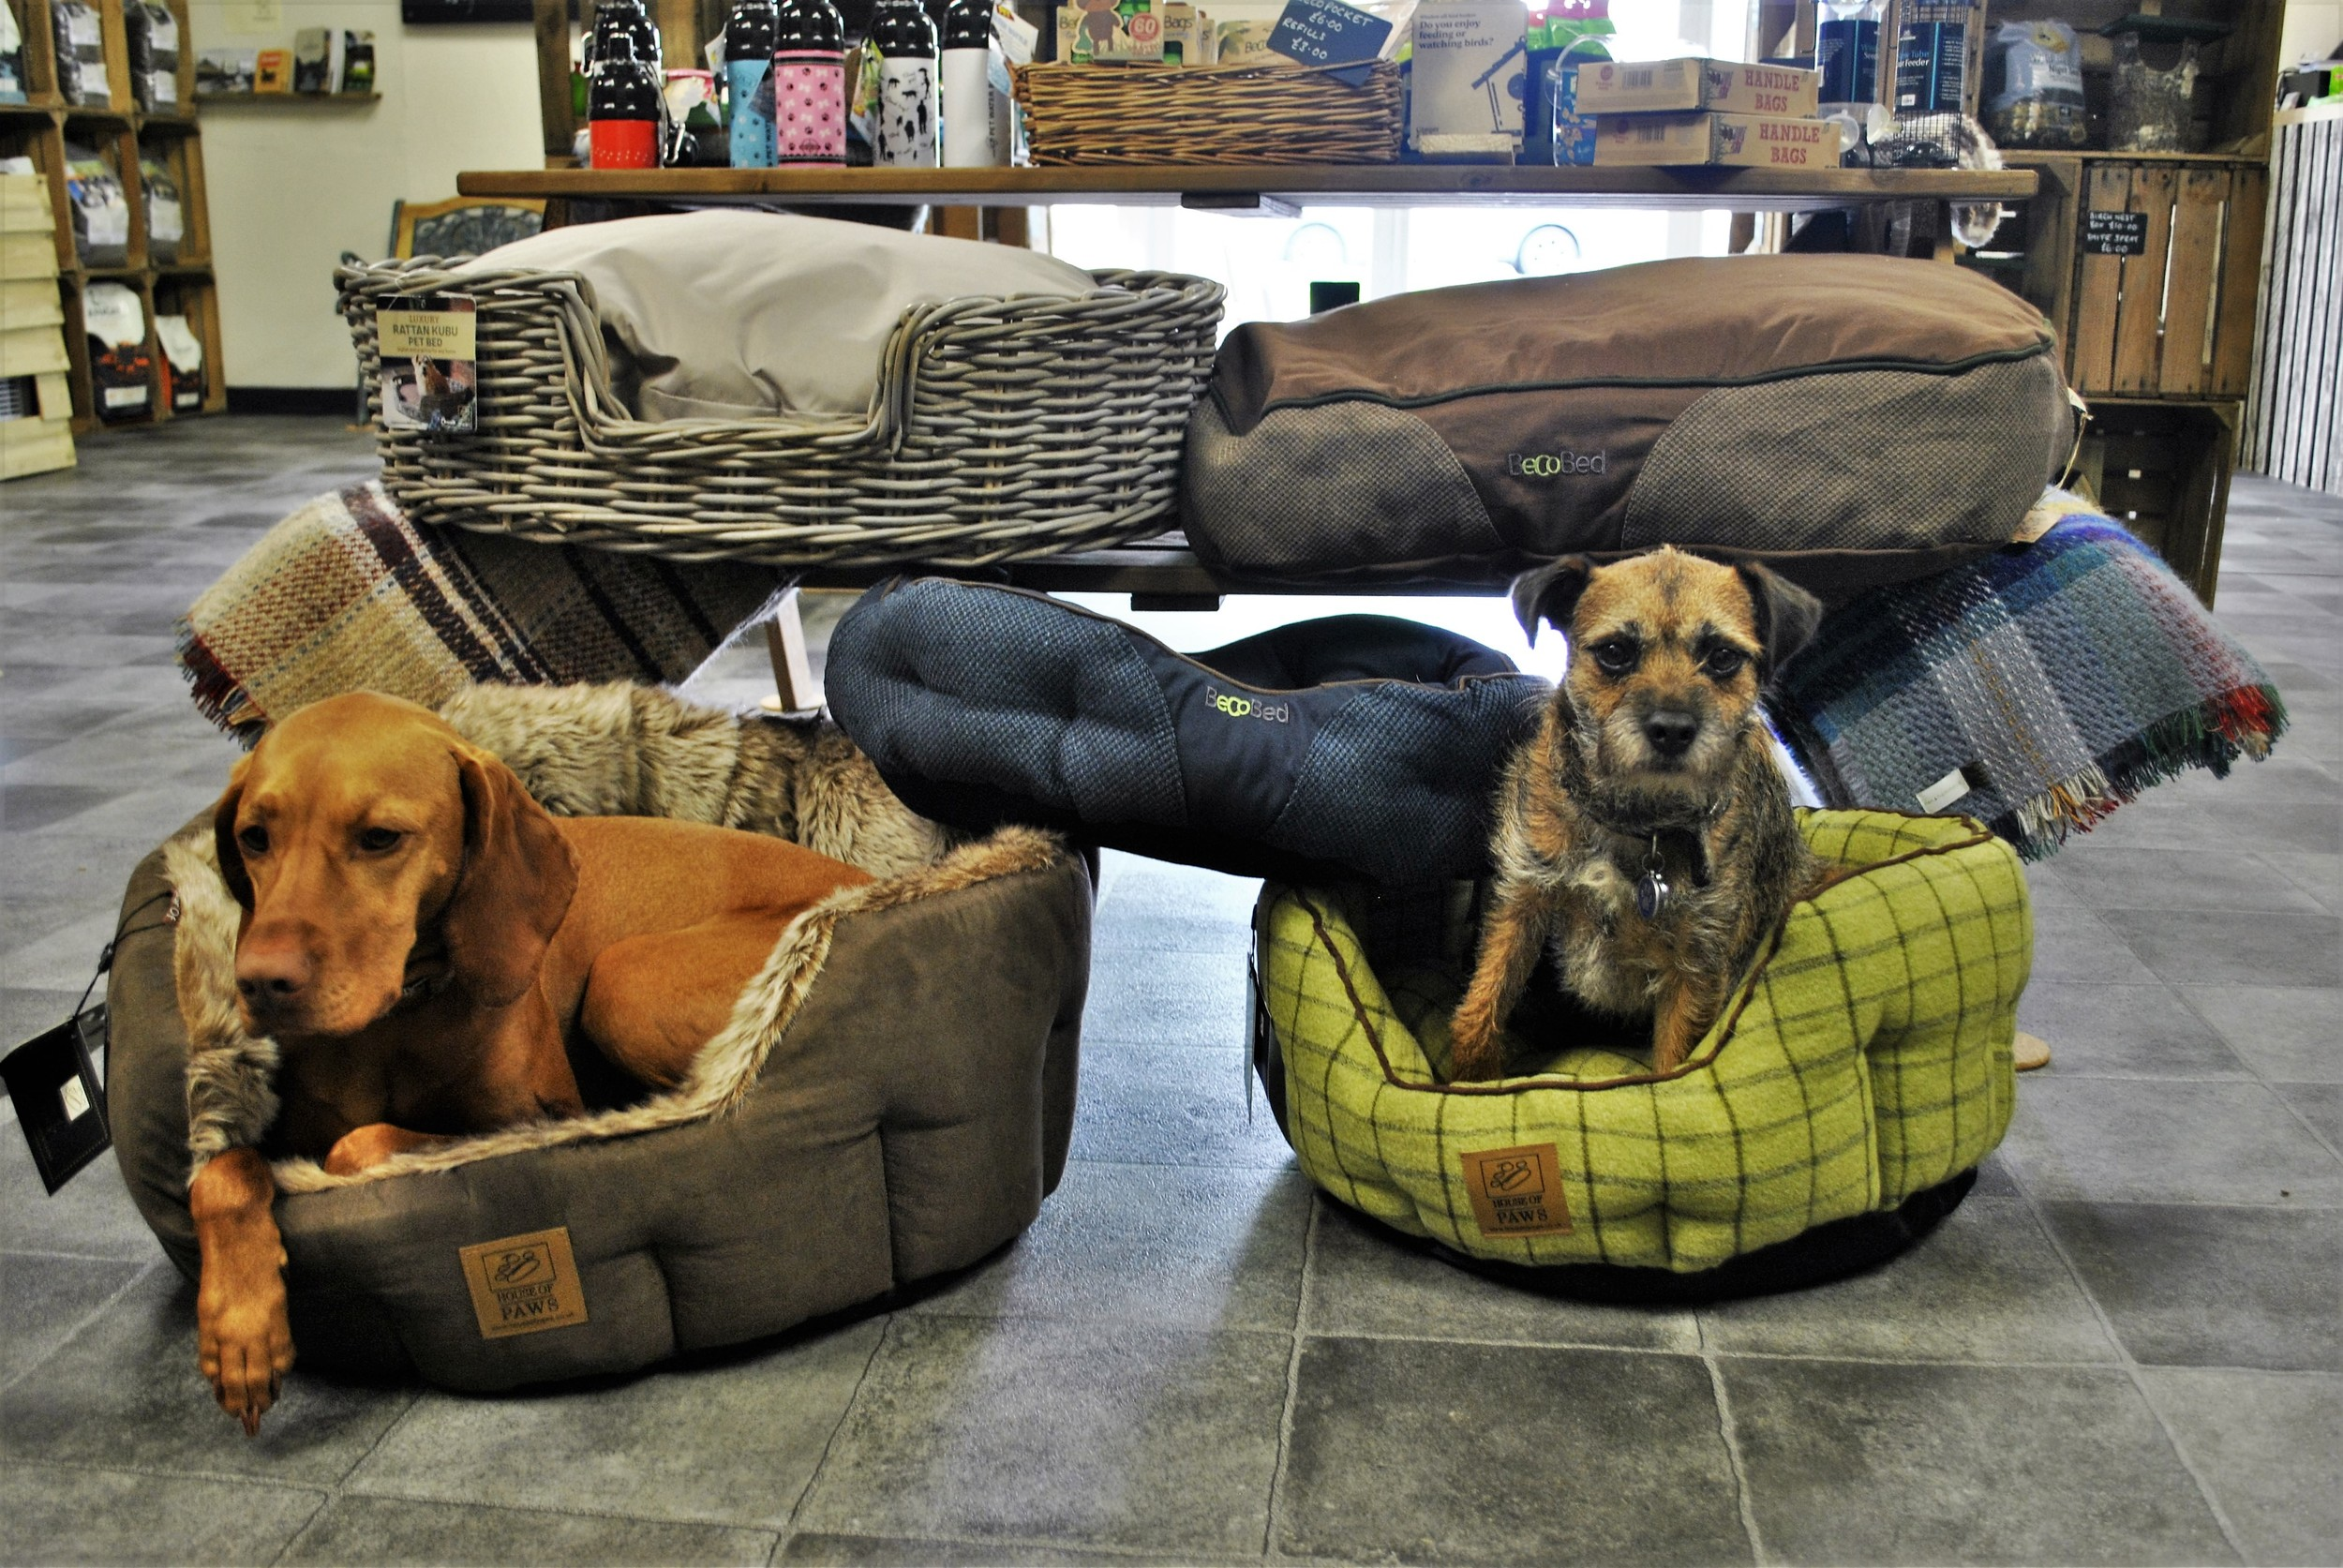 Dog beds for sale at Ginger&Browns pet shop in Northwich, Chester near Chester, Winsford, Frodsham. Shop in store or buy online.